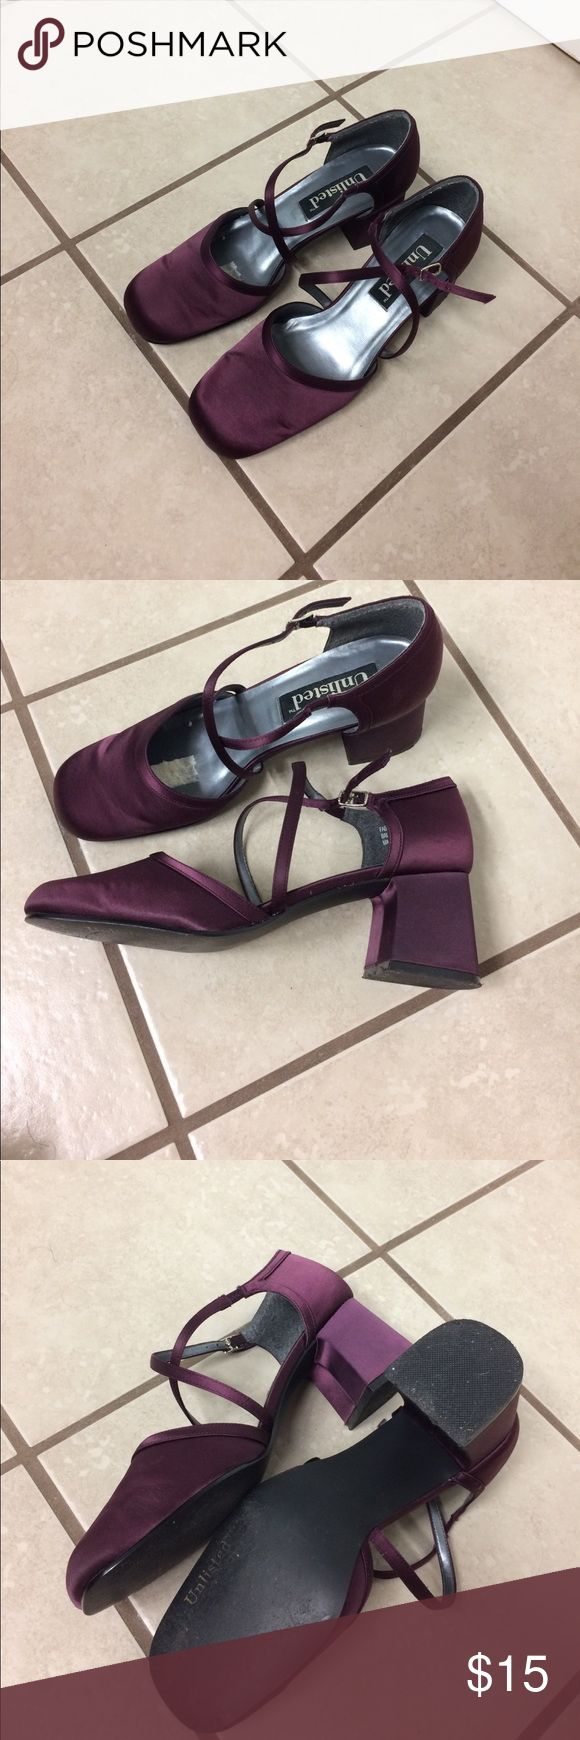 """Wine colored dress shoes These match the velvet/satin dress also for sale. Comfortable dress shoes with a 2.25"""" block heel. Unlisted Shoes Heels"""